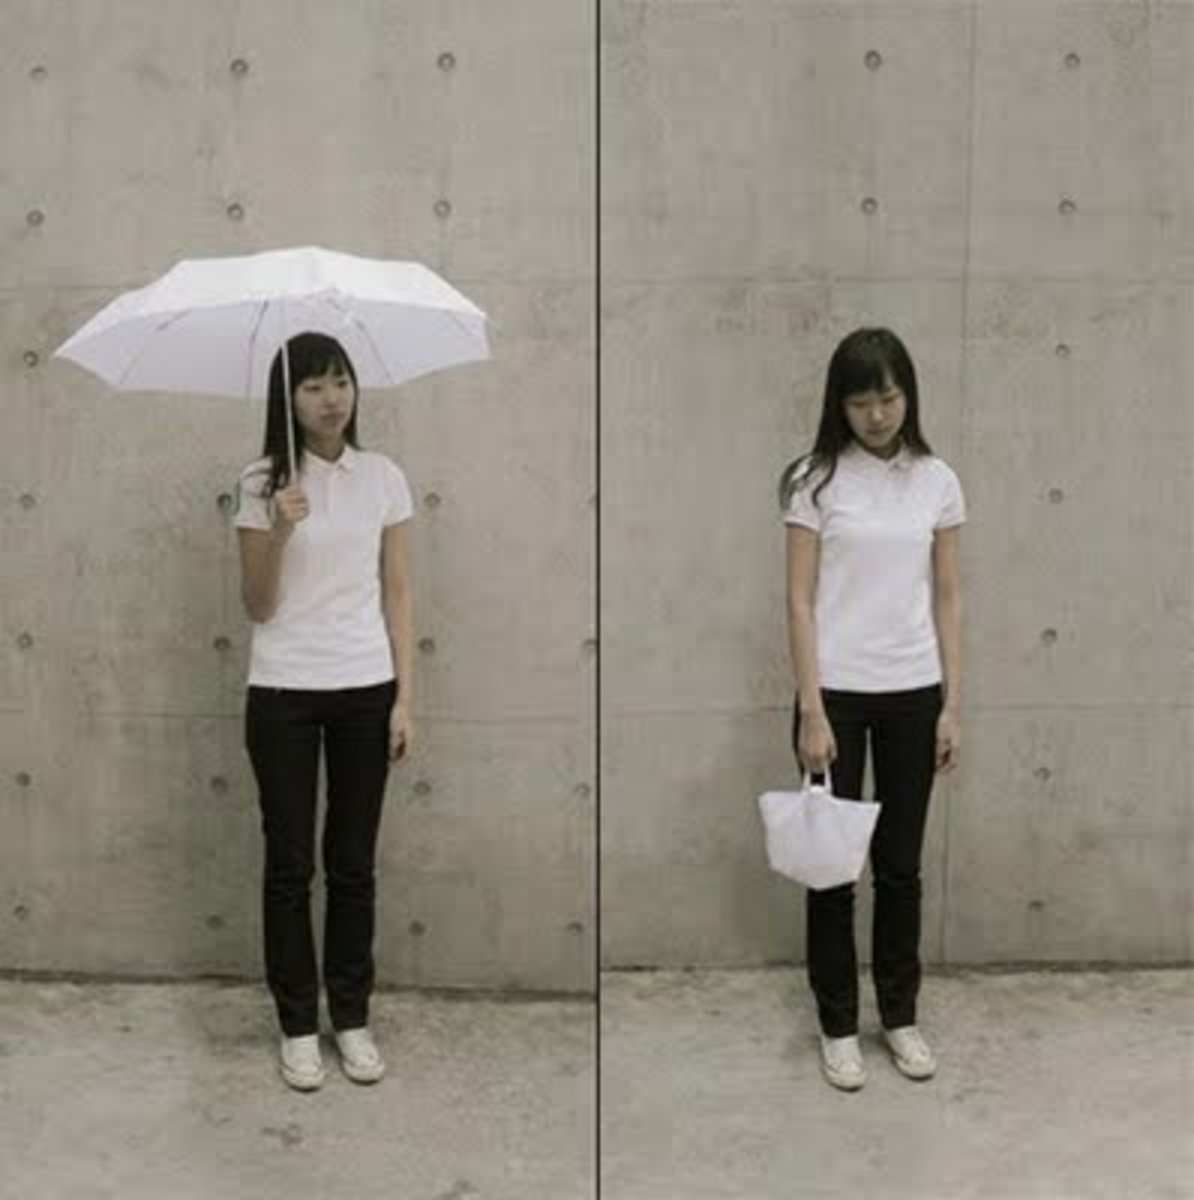 Bag and Umbrella in one